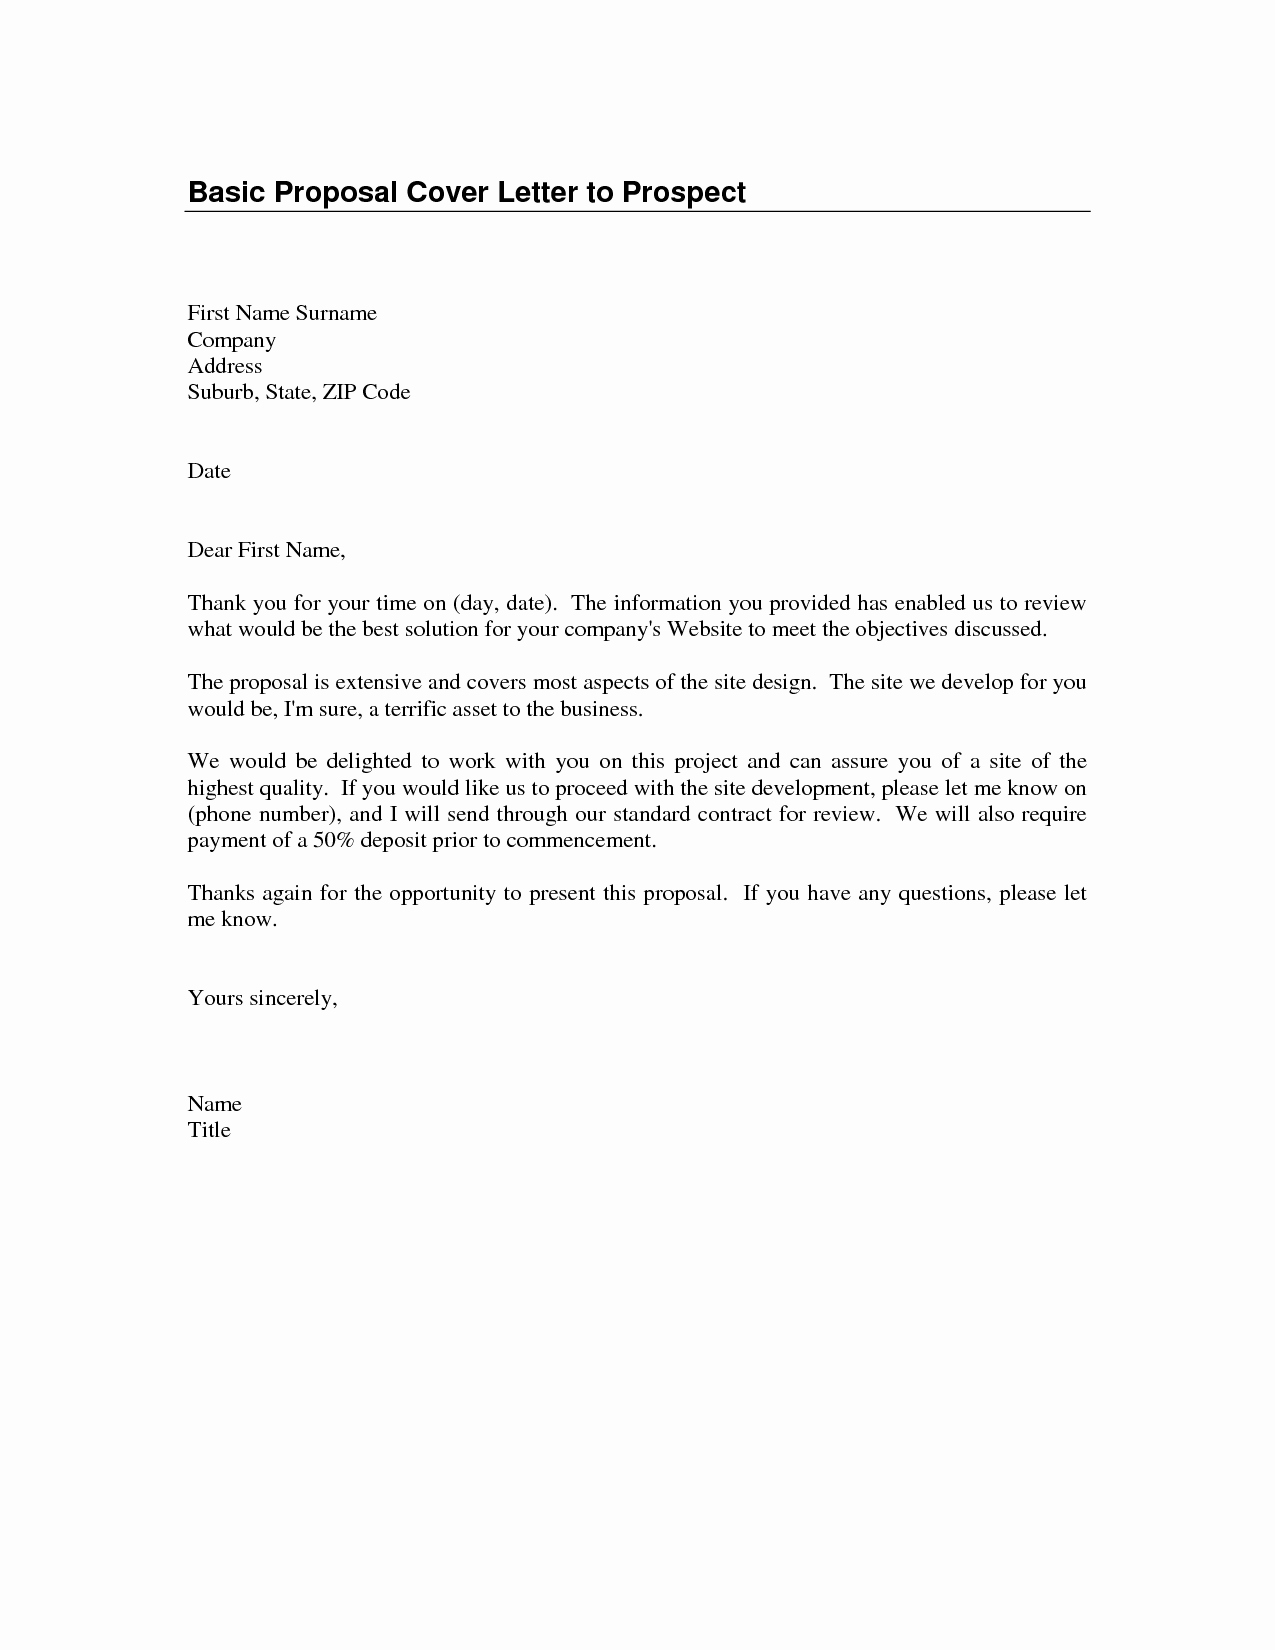 Free Job Cover Letter Template Fresh Basic Cover Letter Sample Basic Cover Letters Free